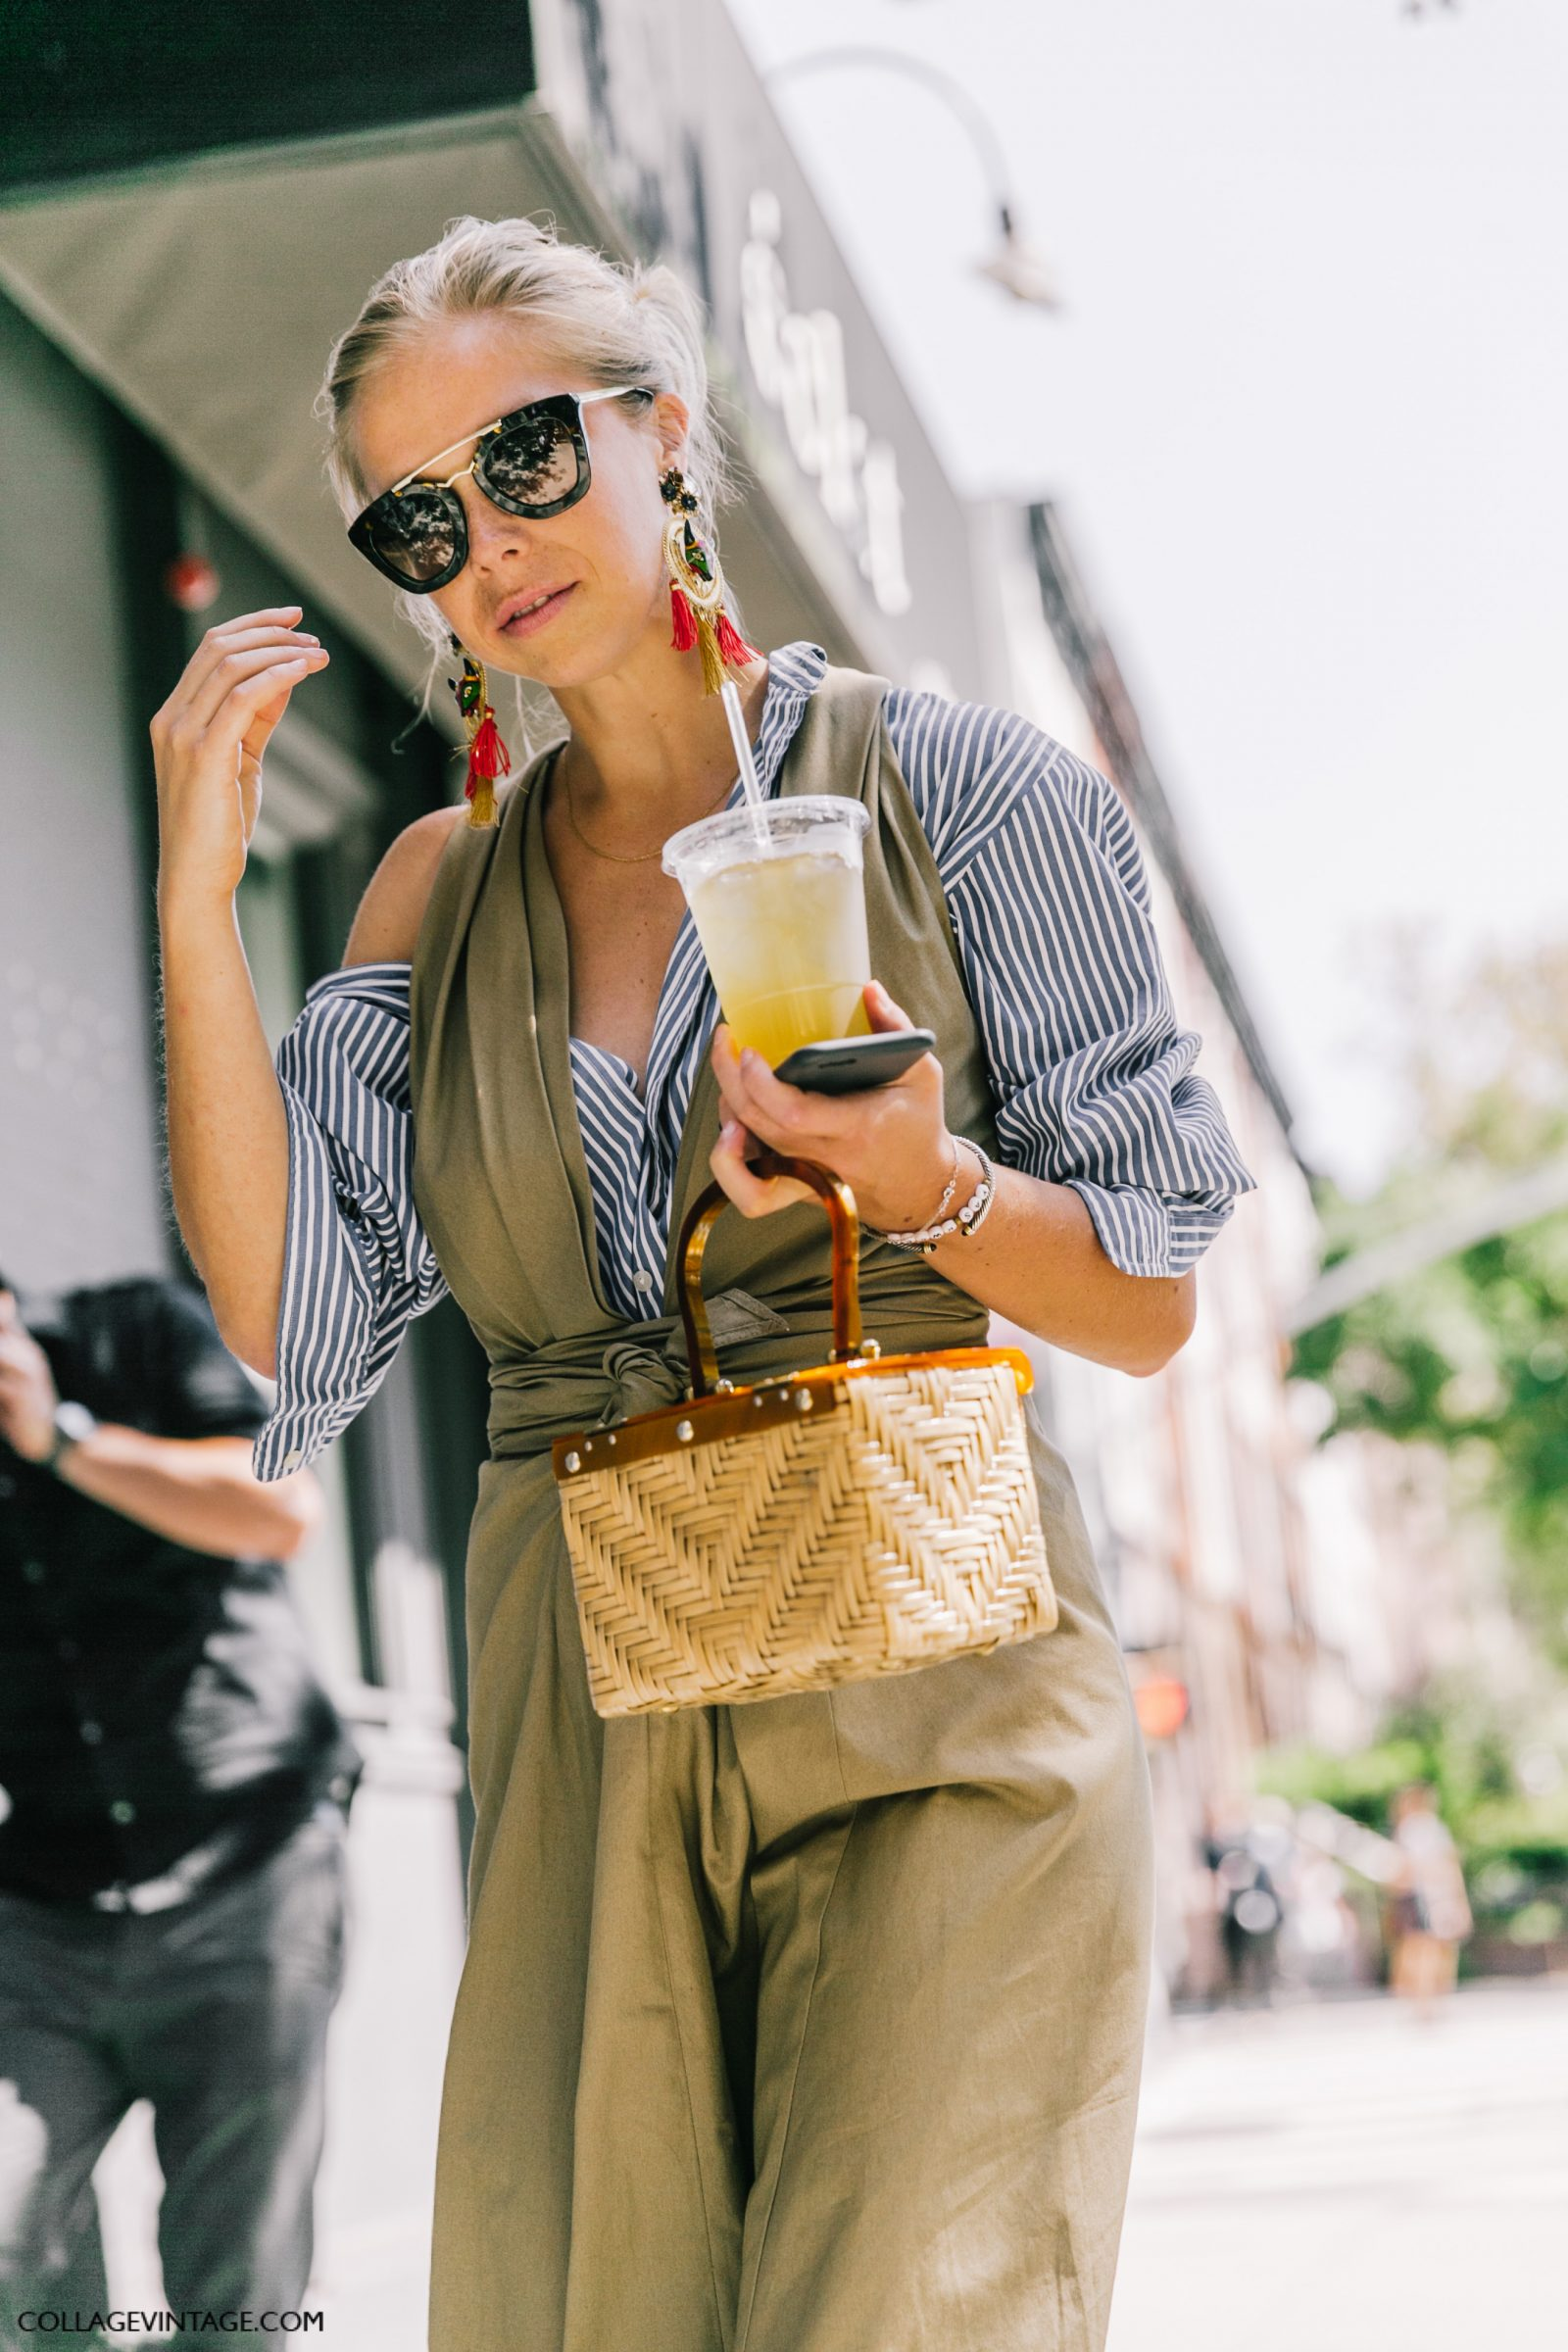 nyfw-new_york_fashion_week_ss17-street_style-outfits-collage_vintage-vintage-mansur_gavriel-rodarte-coach-116